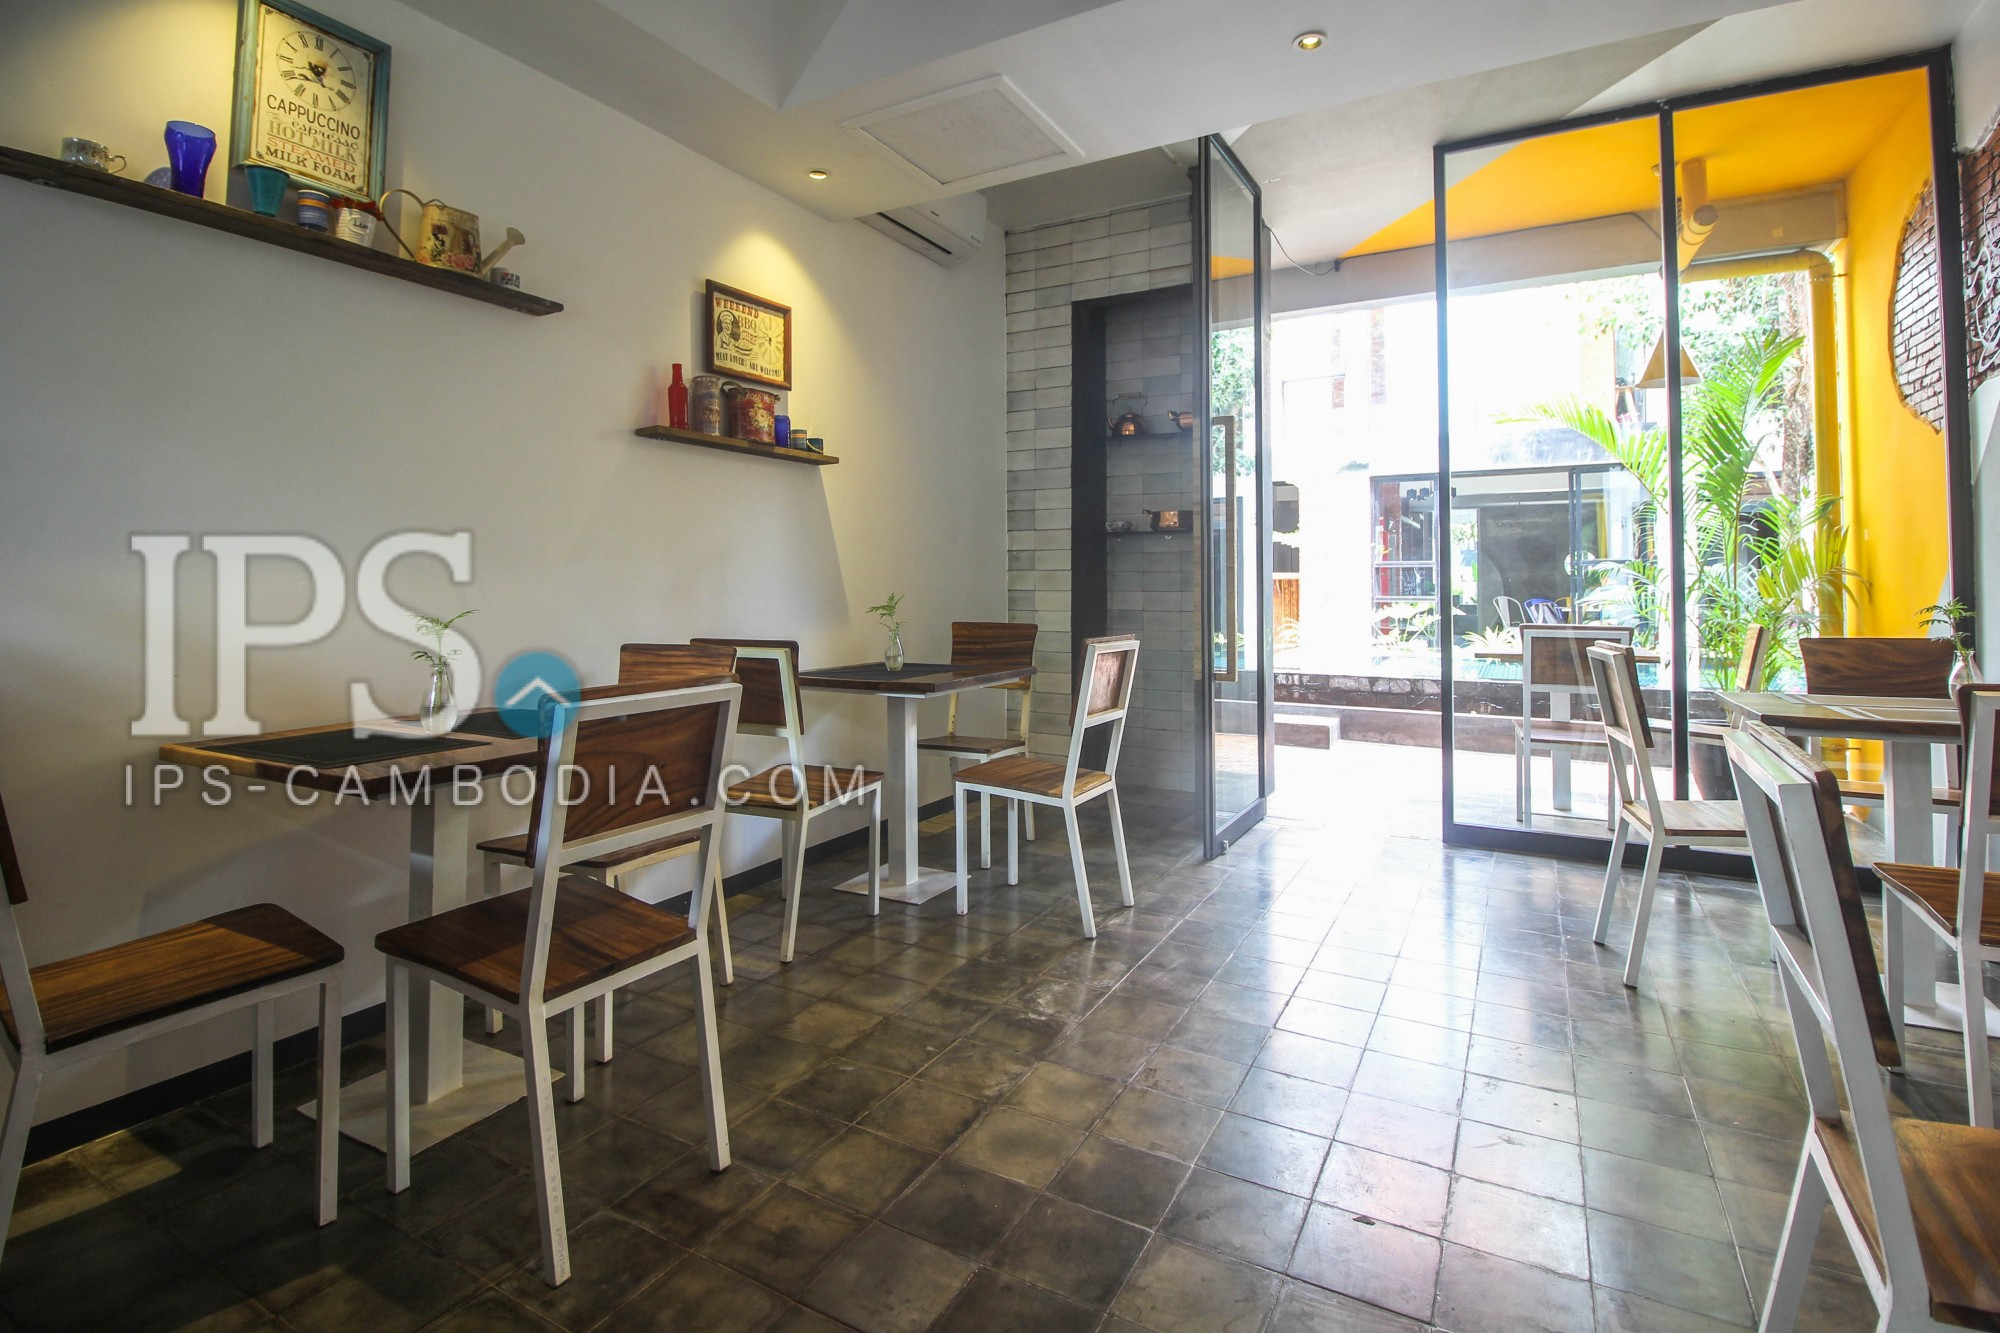 15 Rooms Boutique Hotel For Rent - Svay Dangkum, Siem Reap